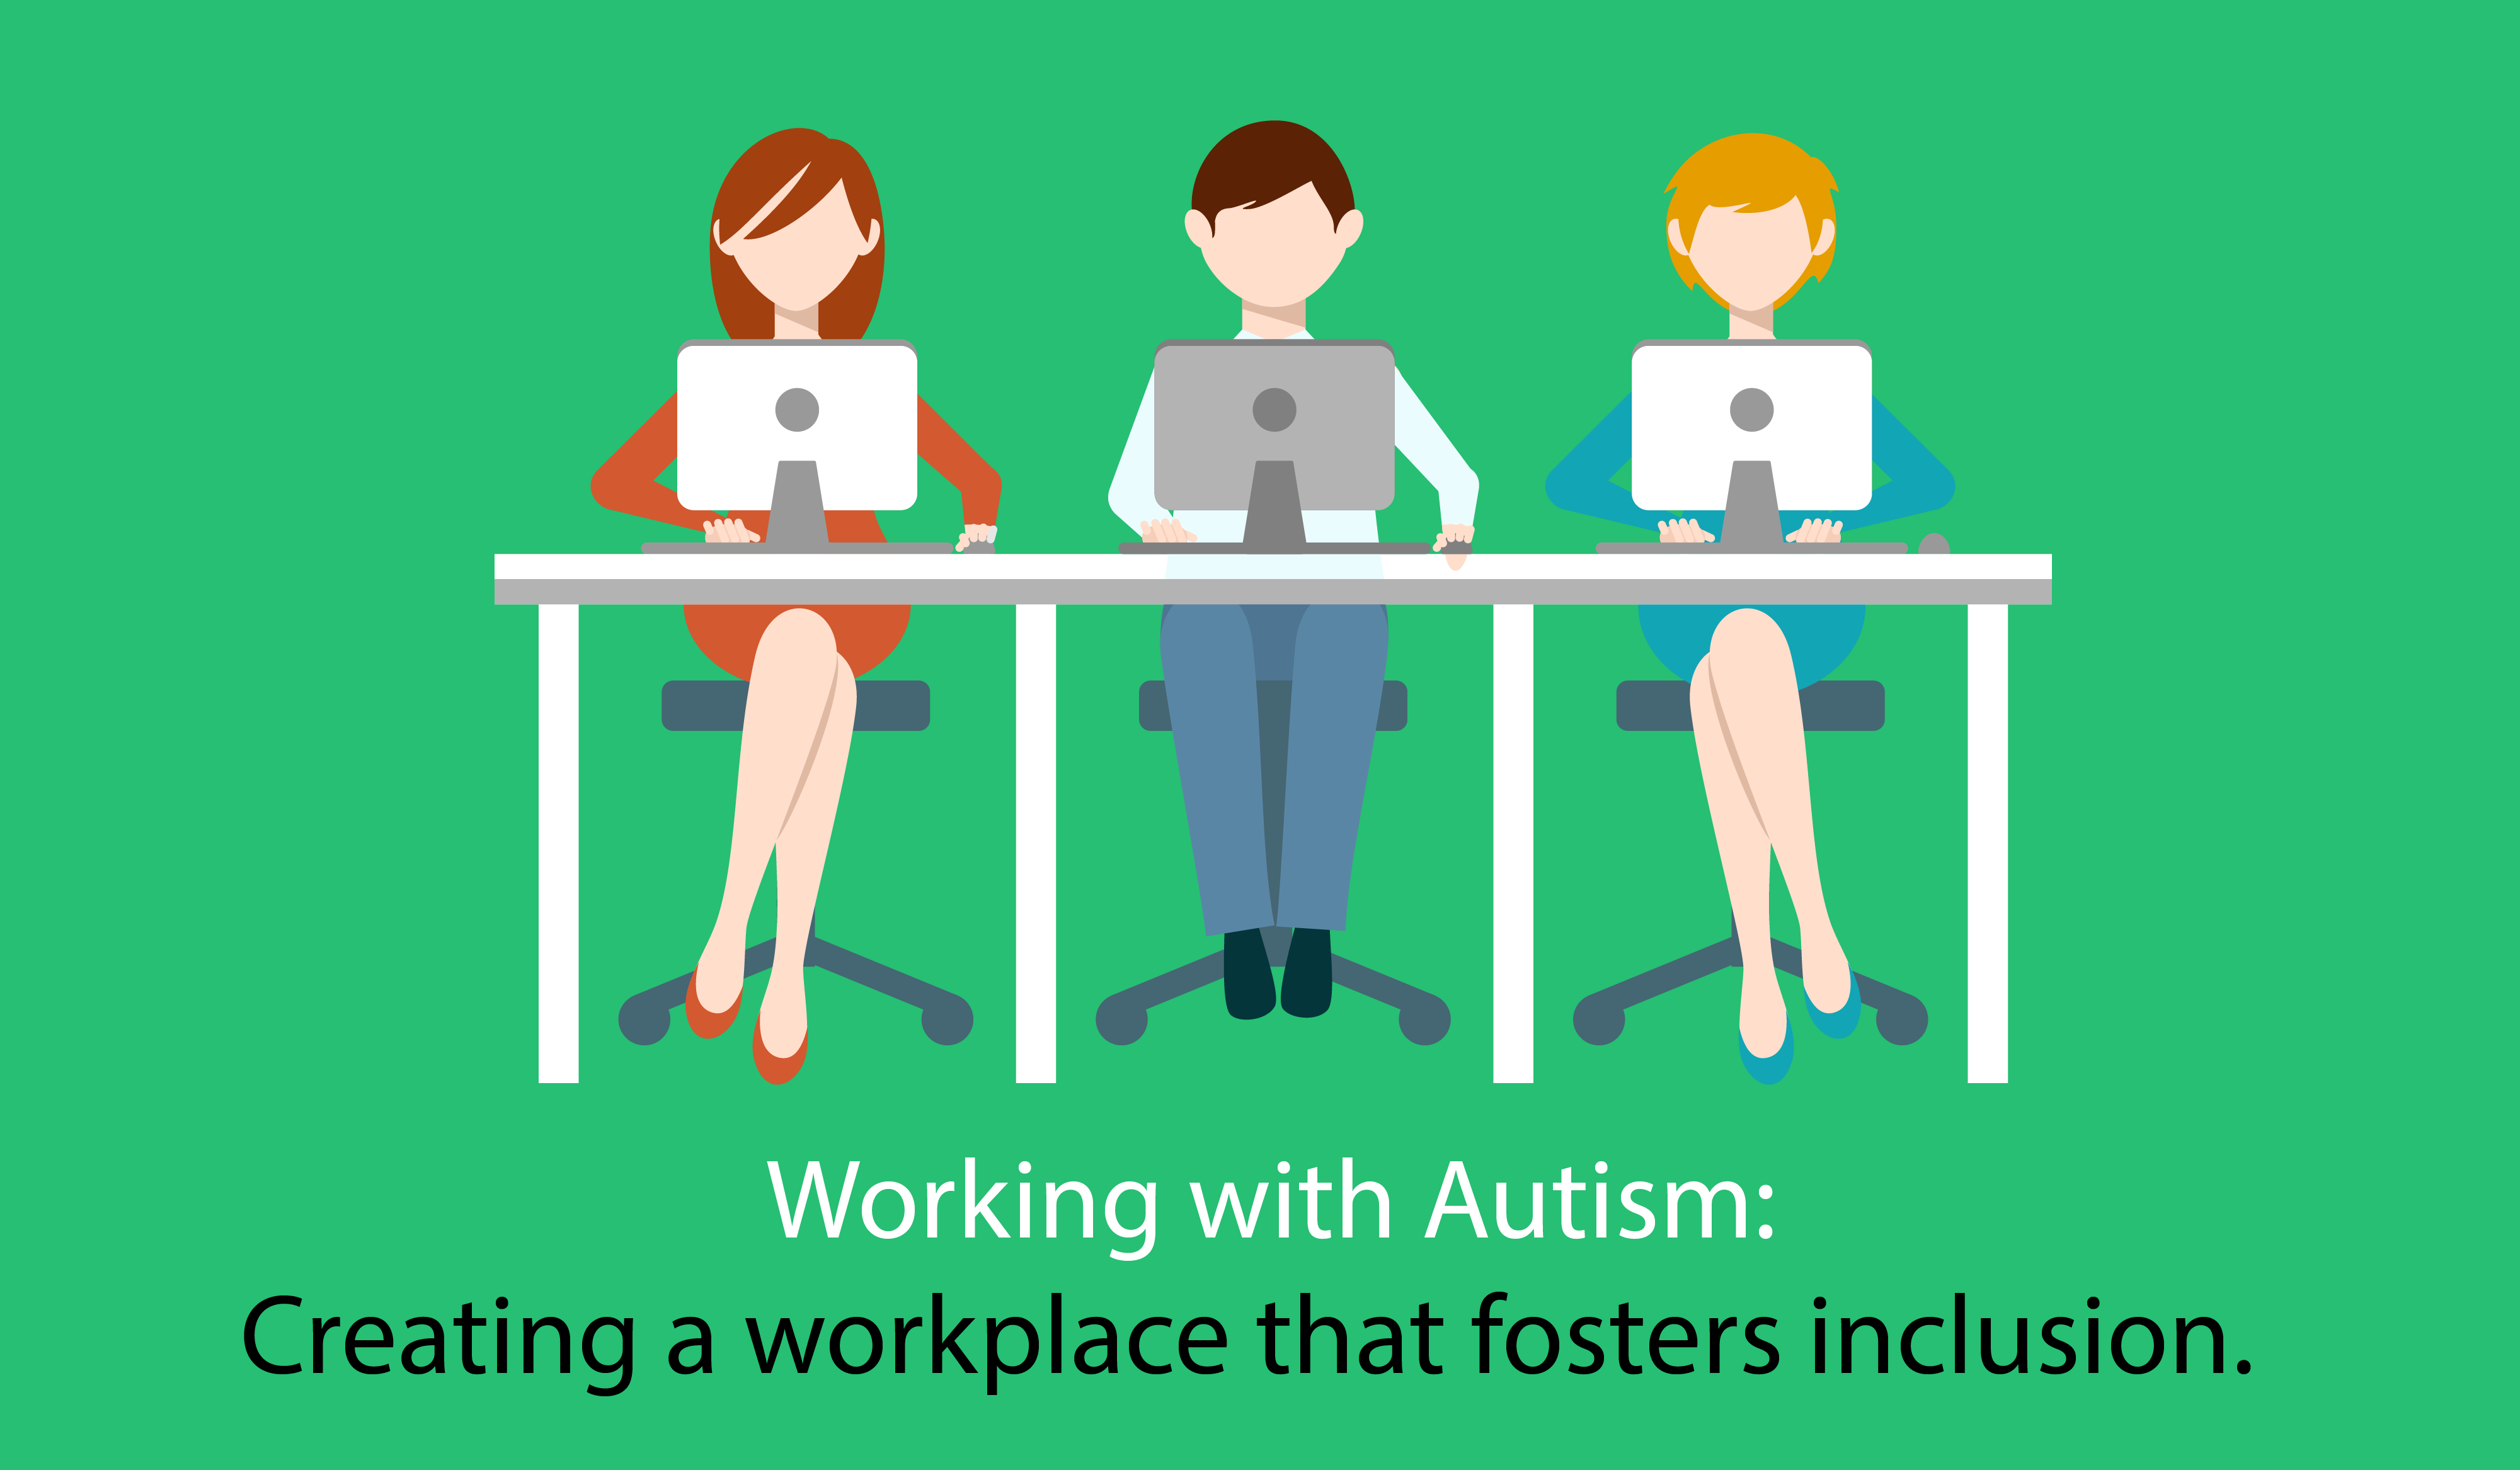 Working with Autism: Creating a workplace that fosters inclusion.